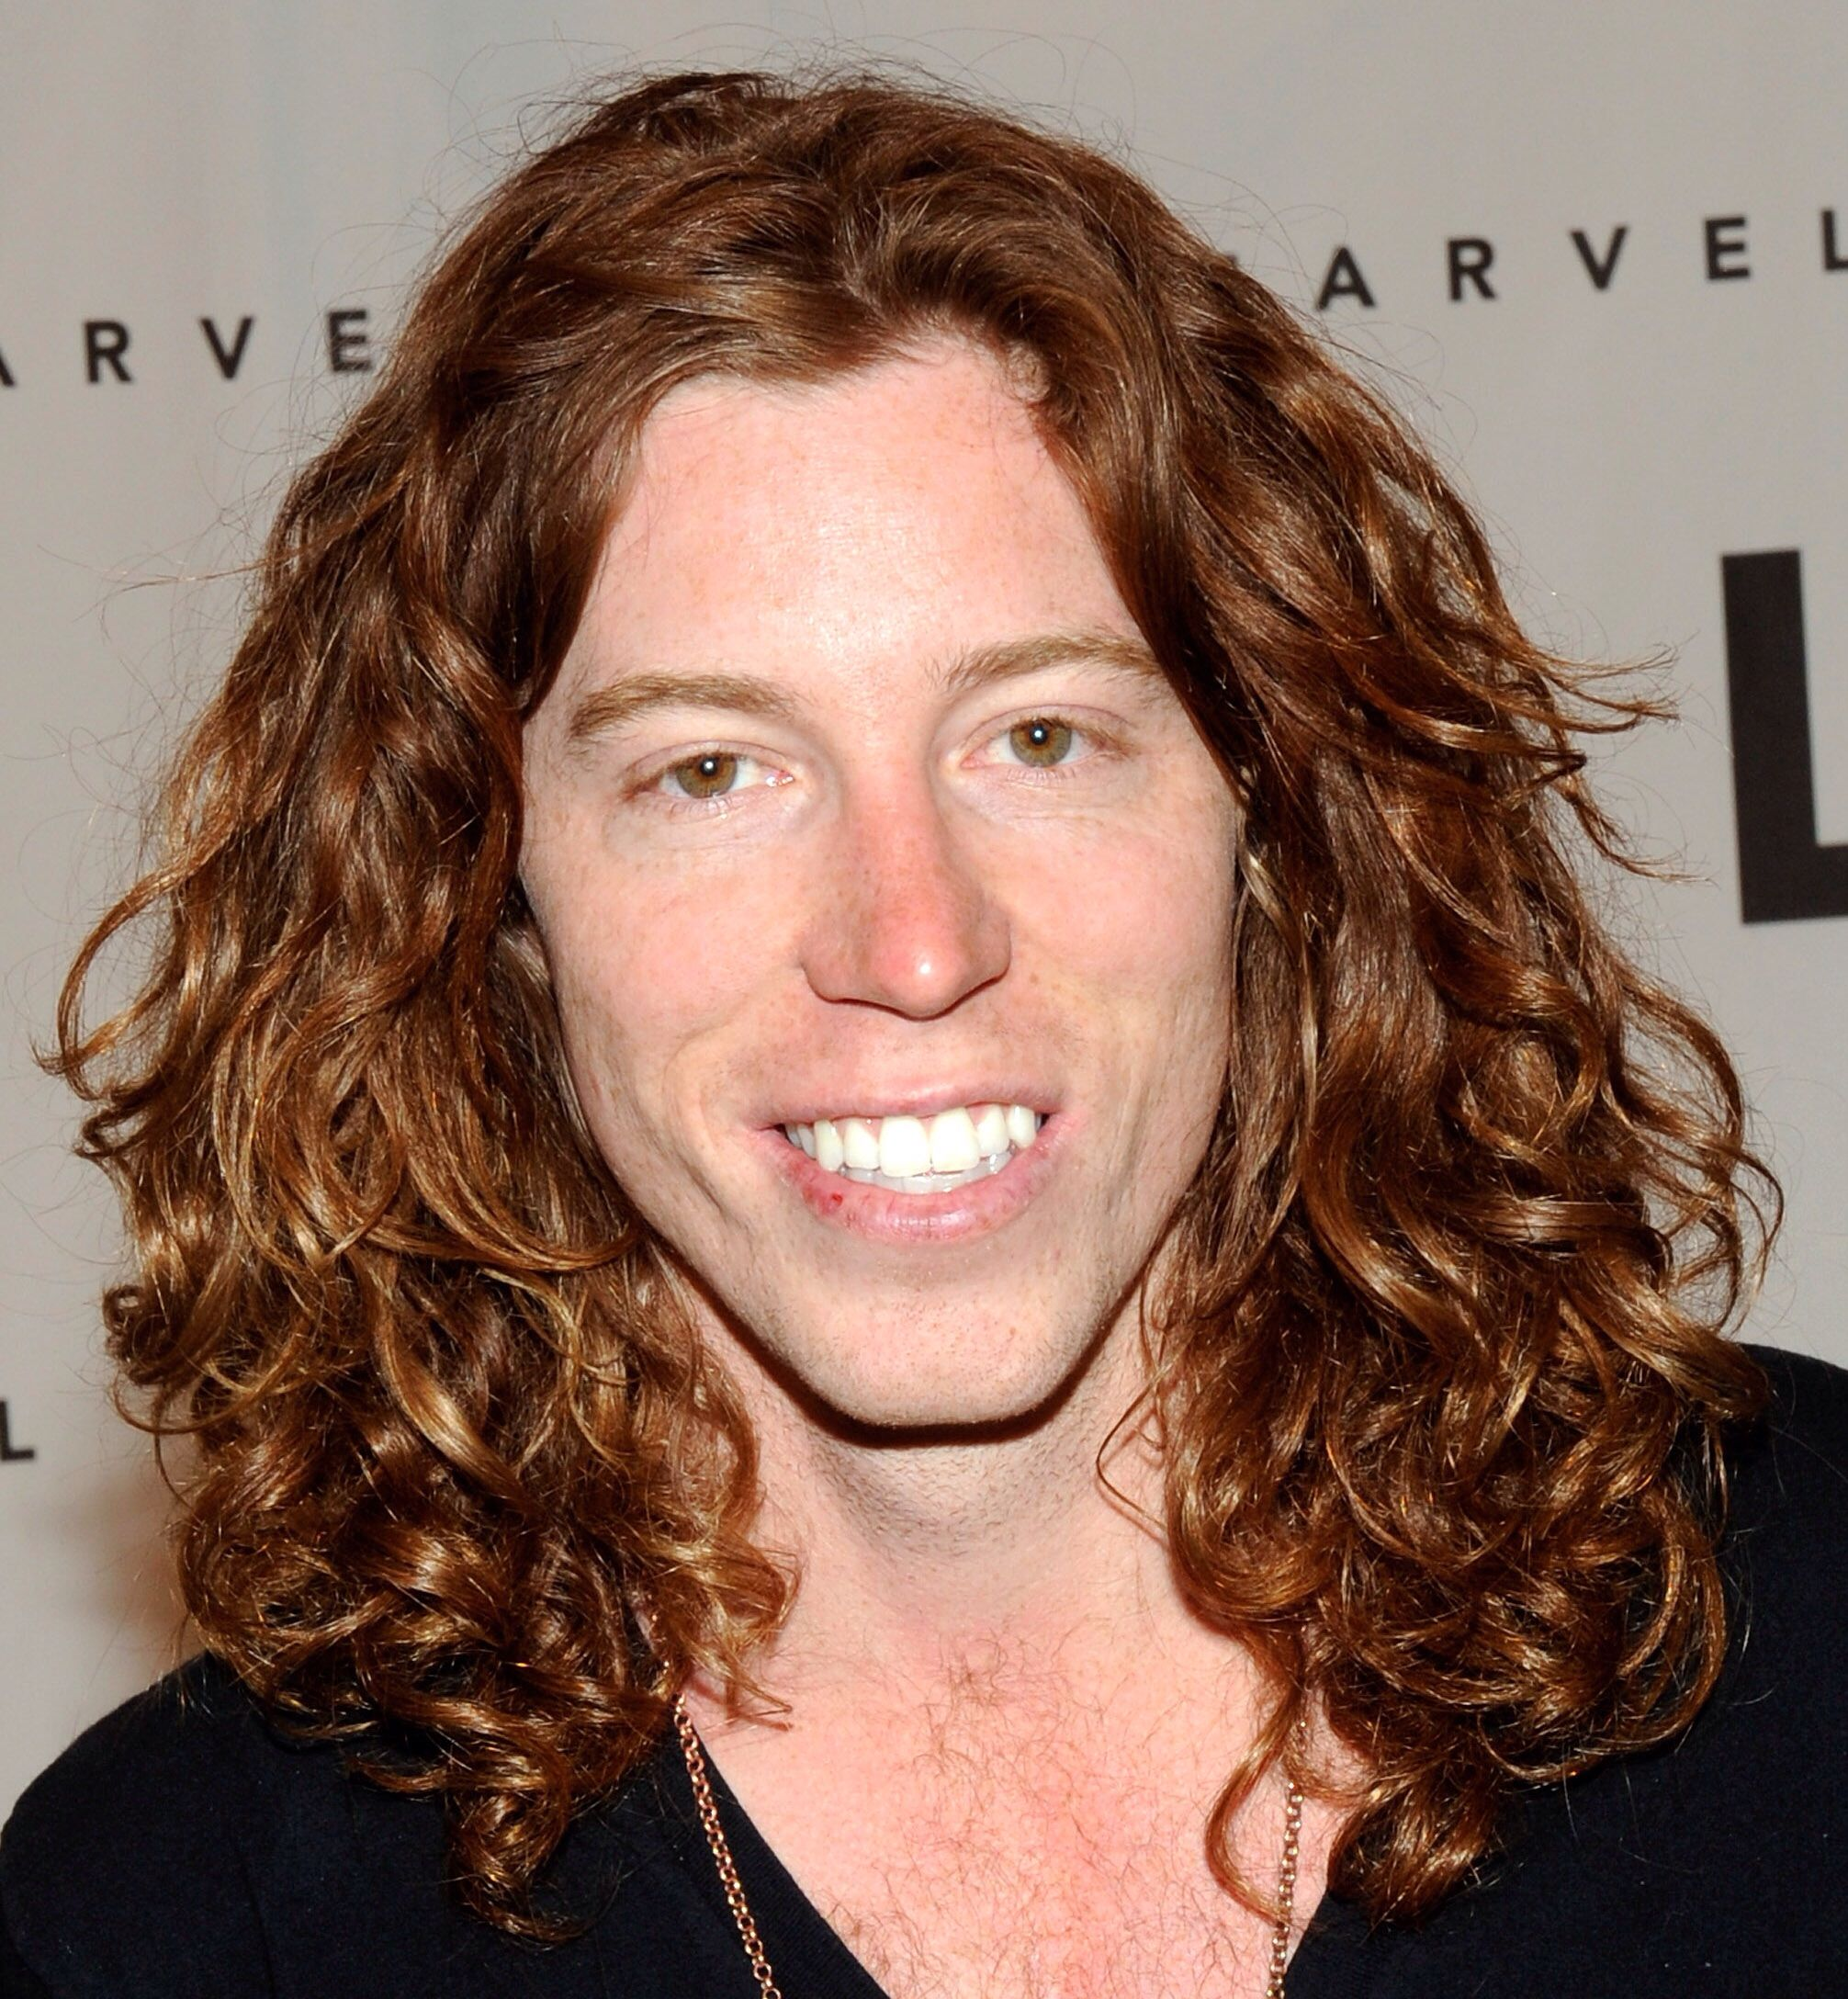 Shaun White With Long Hair The Flying Tomato Long Hair Styles Men Long Hair Styles Shawn White